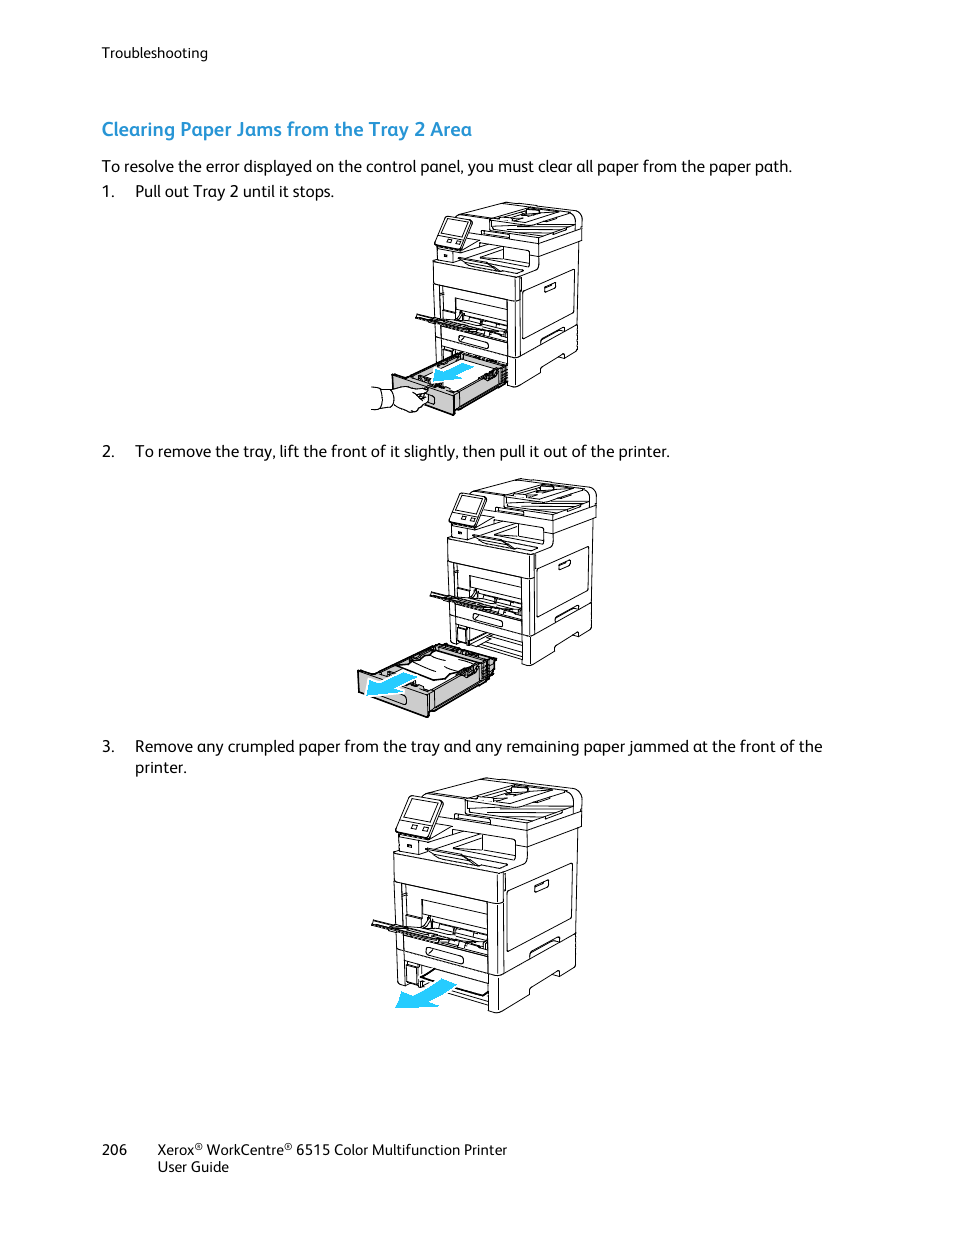 Clearing paper jams from the tray 2 area | Xerox WorkCentre